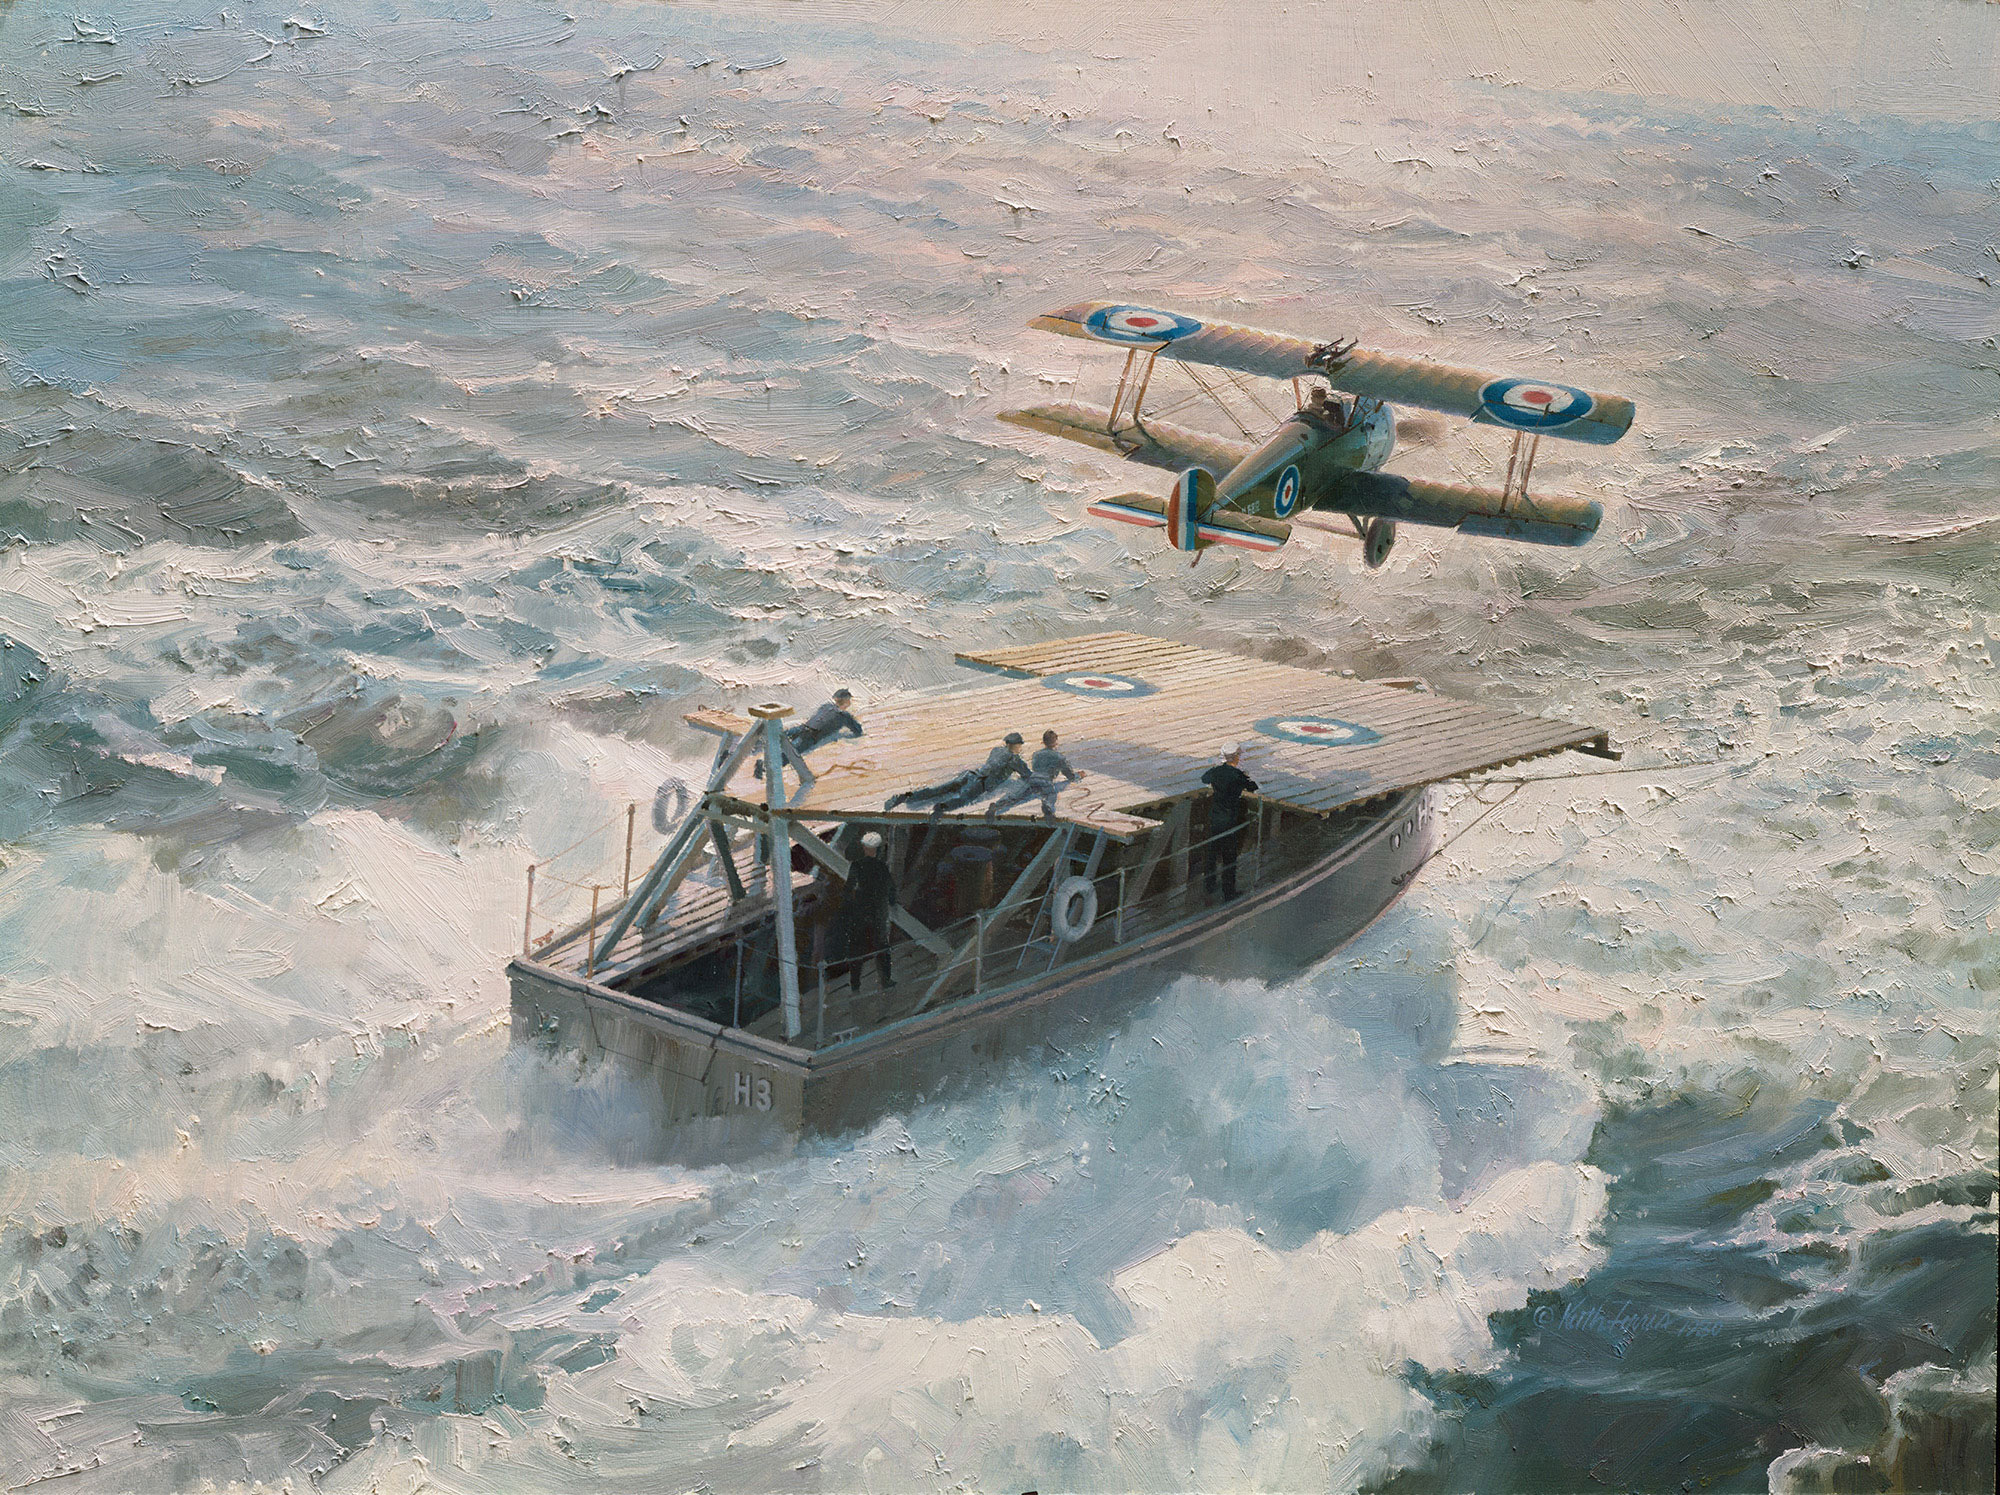 """""""Just Airborne at Sea"""",World War I,British Sopwith 2F.1 Camel,Stuart D. Culley pilot,German Zeppelin L.53,HMS Redoubt, North Sea,Imperial War Museum, London,Sopwith lithographic print"""